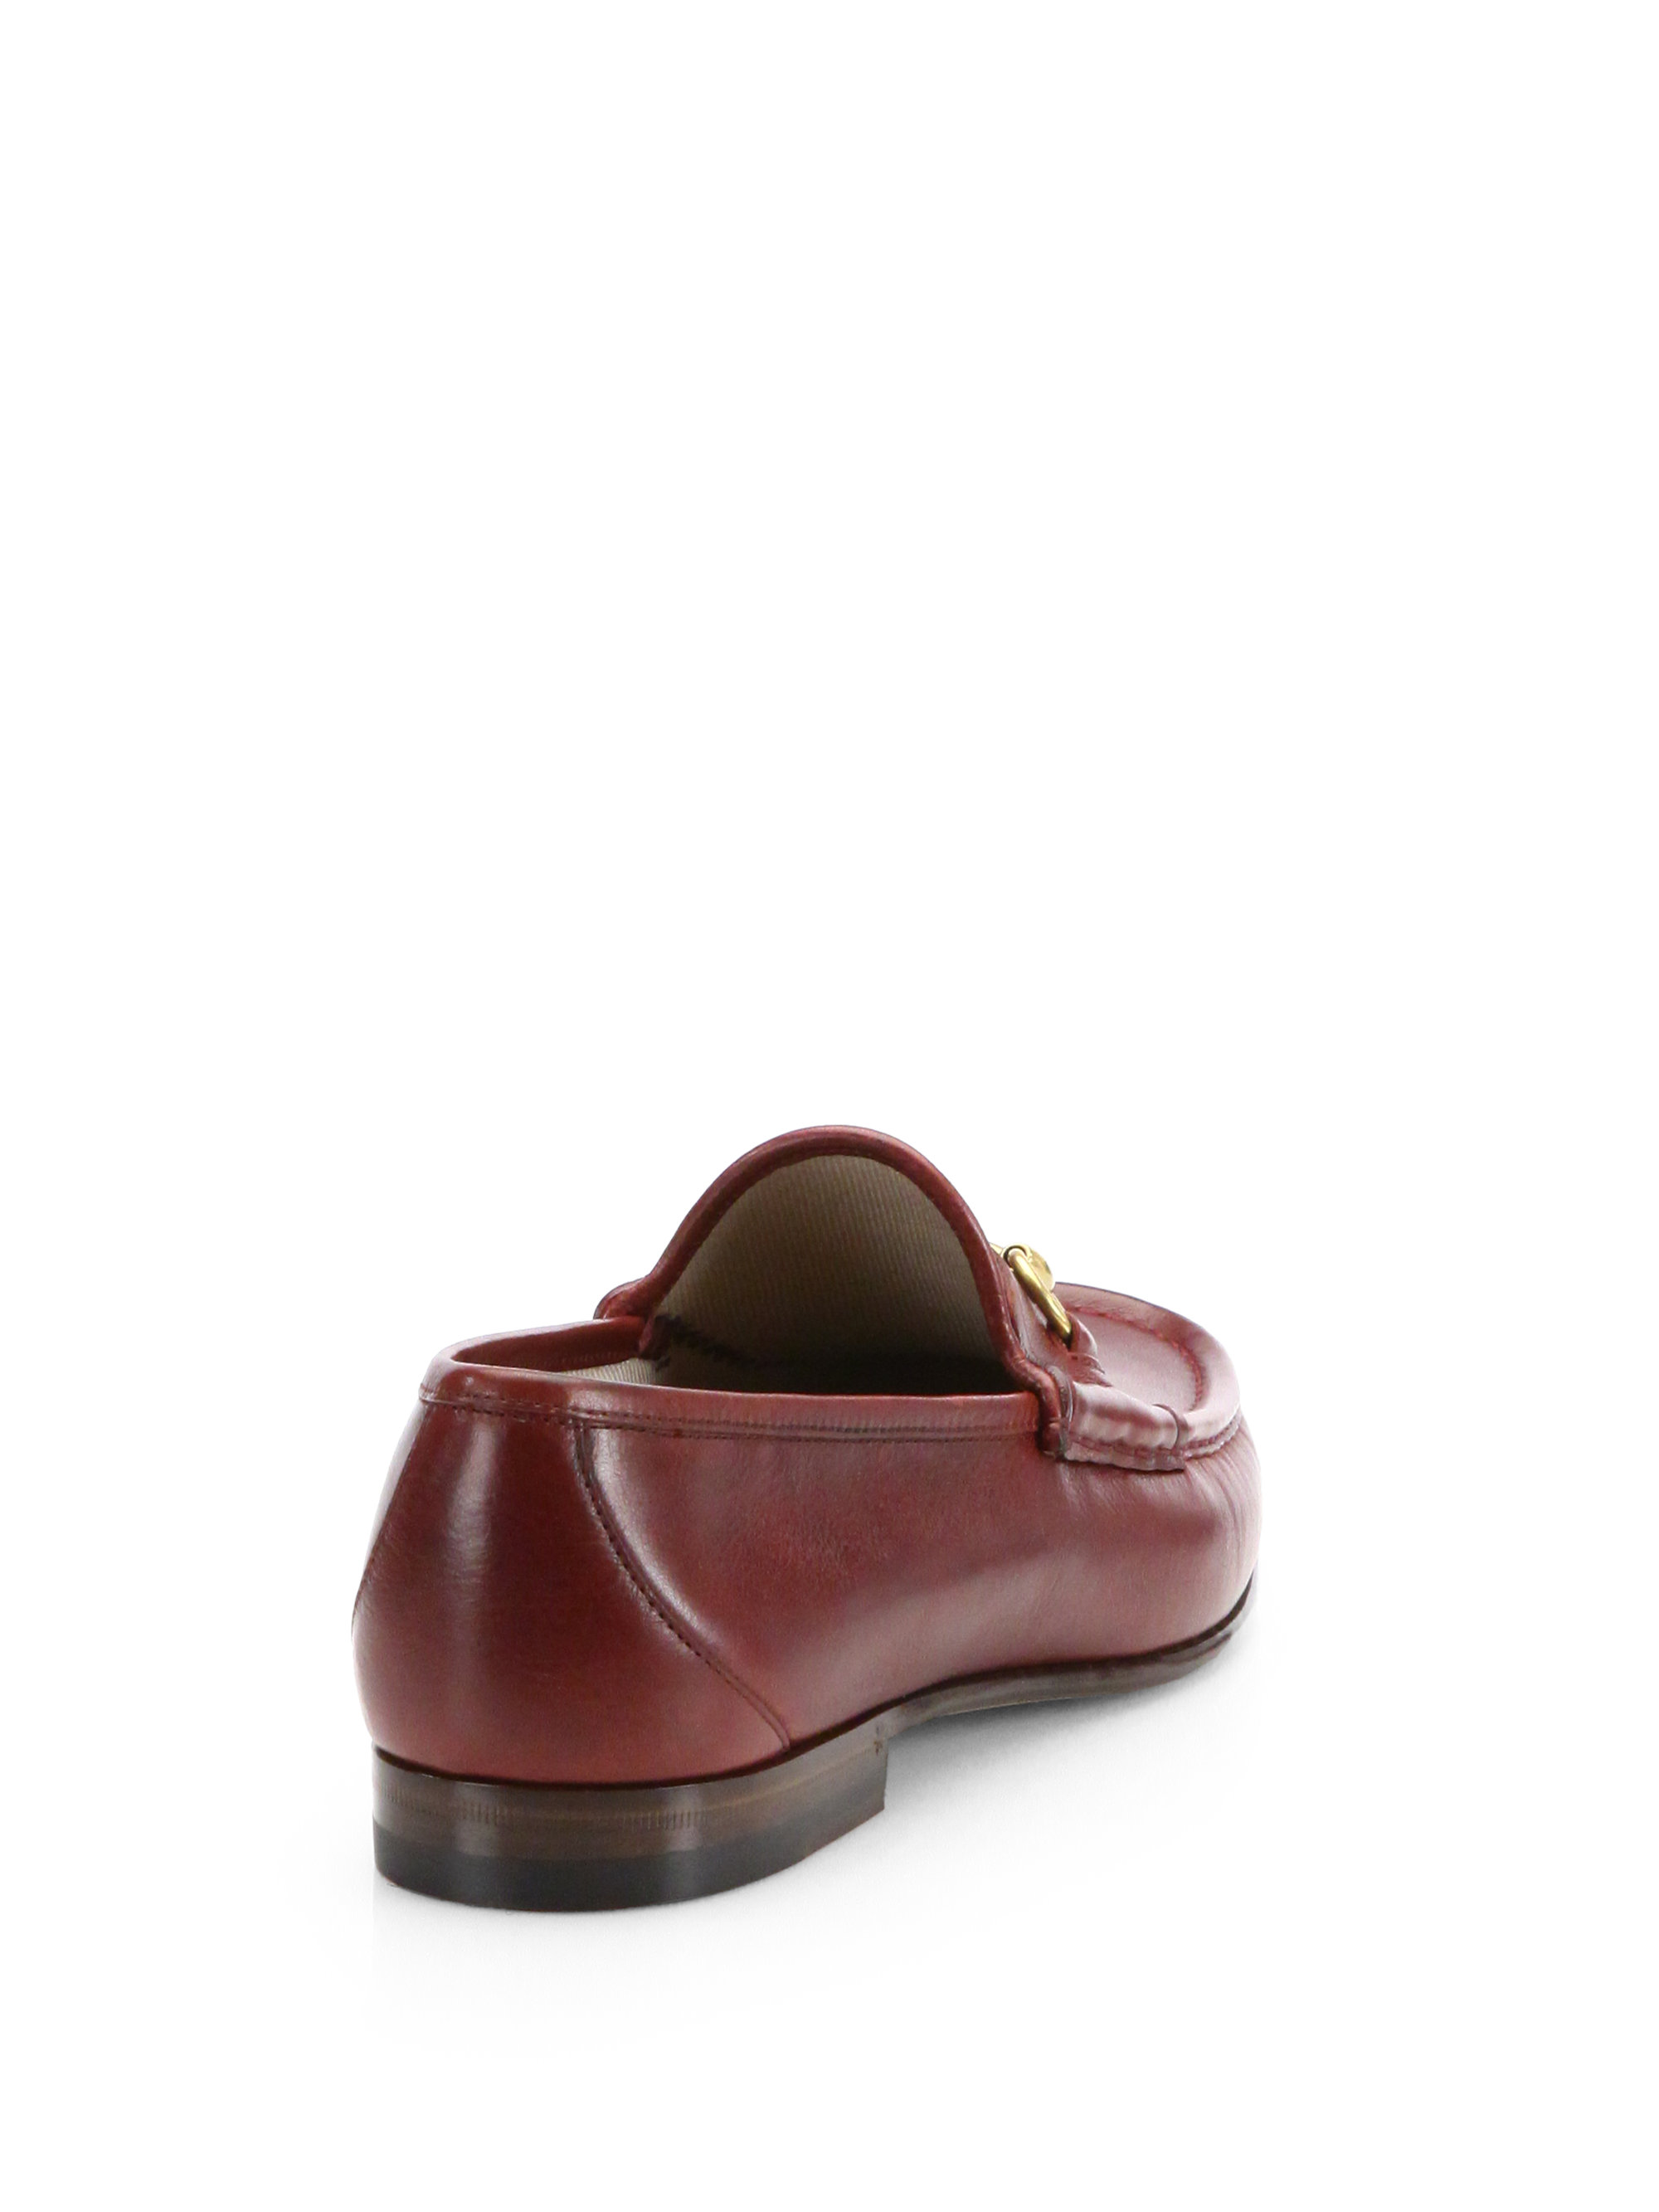 5cf510c62fd Lyst - Gucci Roos 1953 Horsebit Loafers in Brown for Men